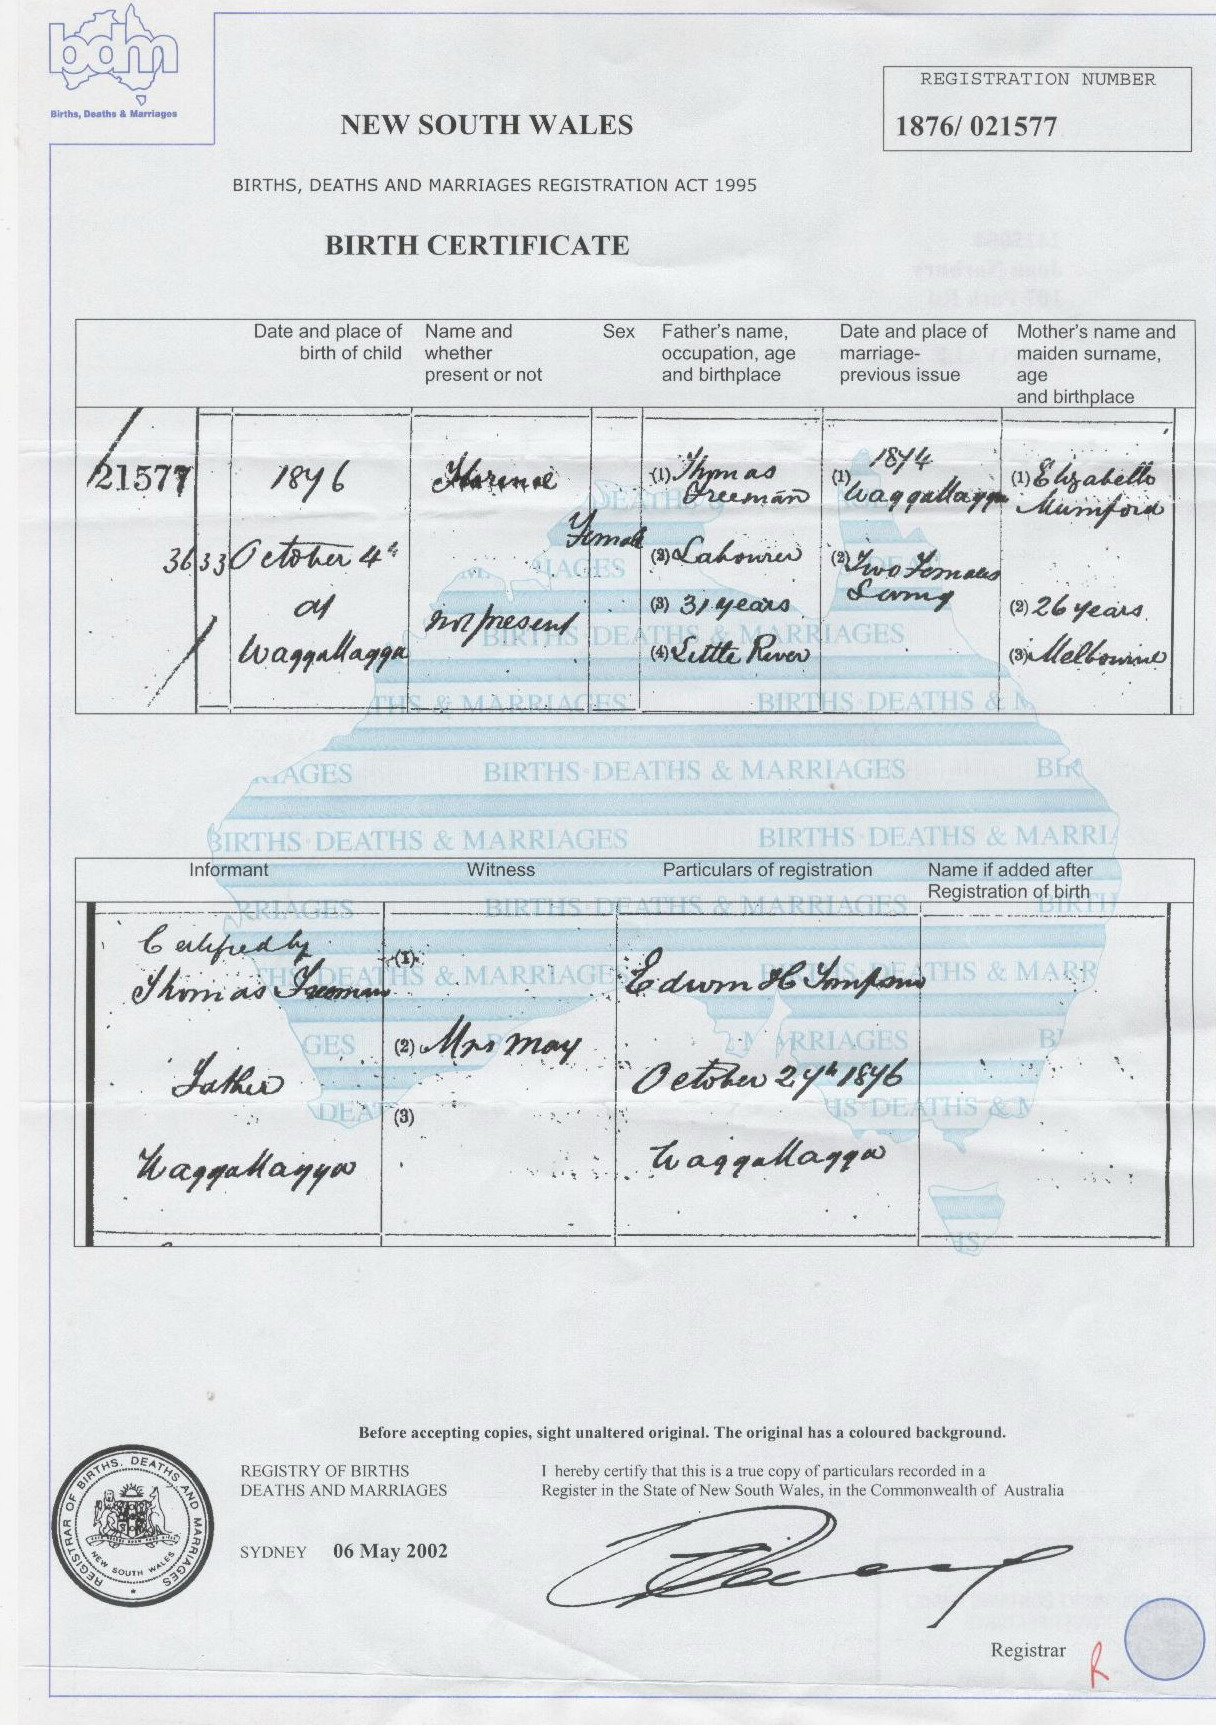 Florence Freeman birth certificate